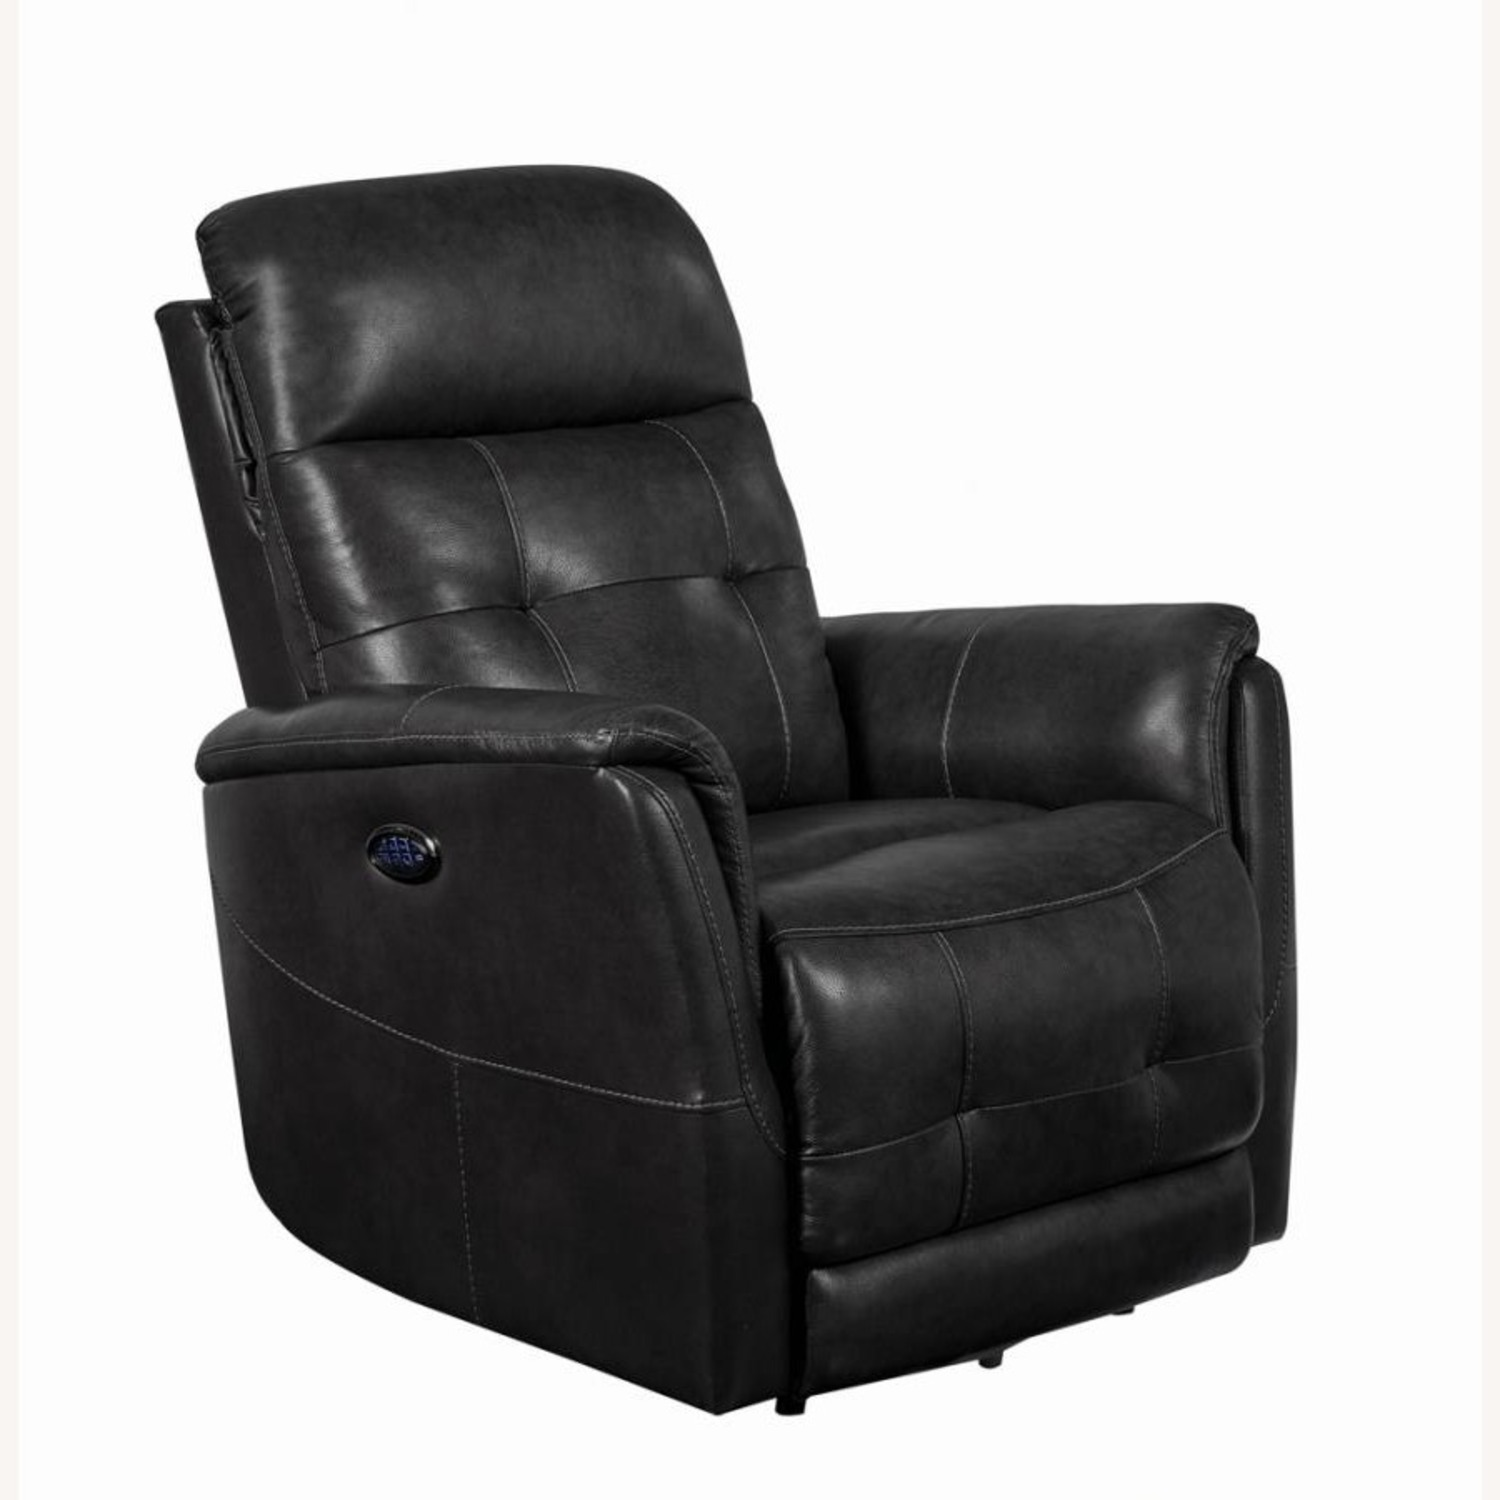 Power Recliner In Grey Leather Upholstery - image-0